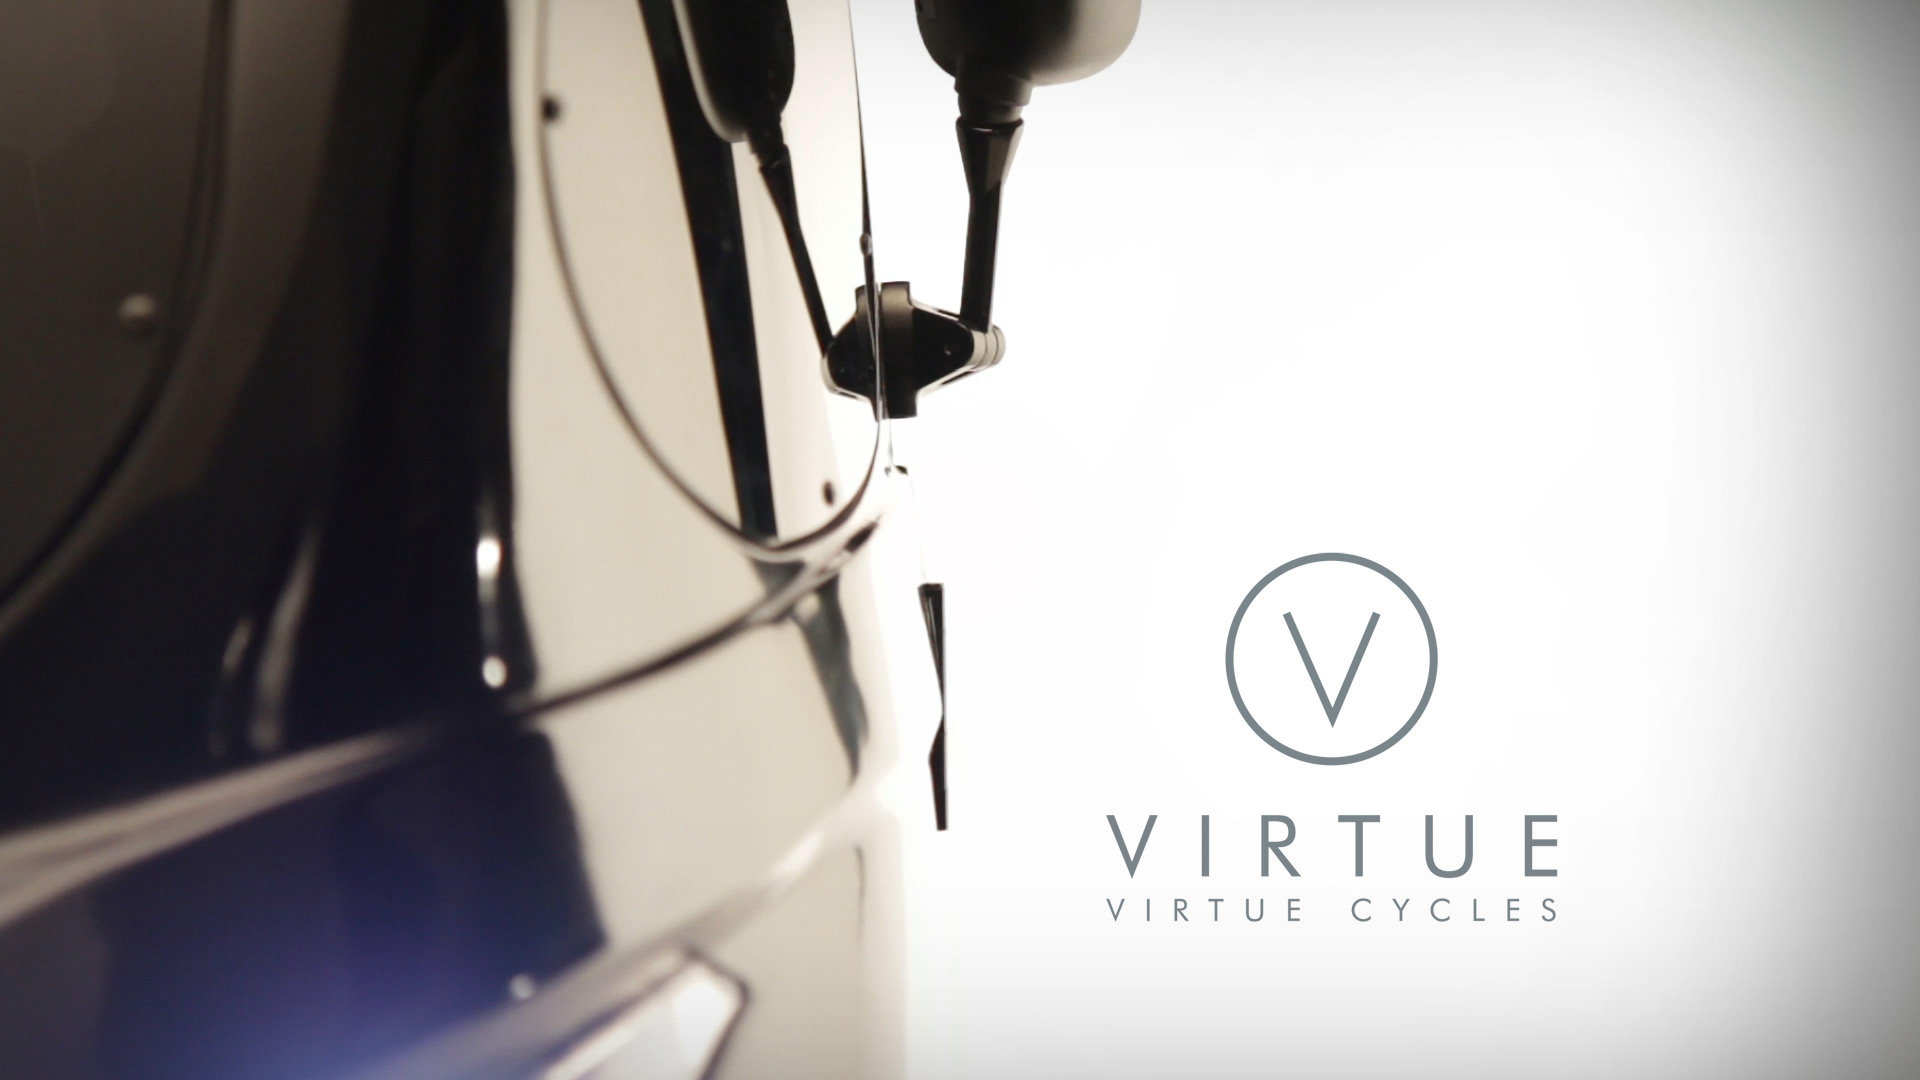 Virtue Cycles | Pedalist Promotional Video